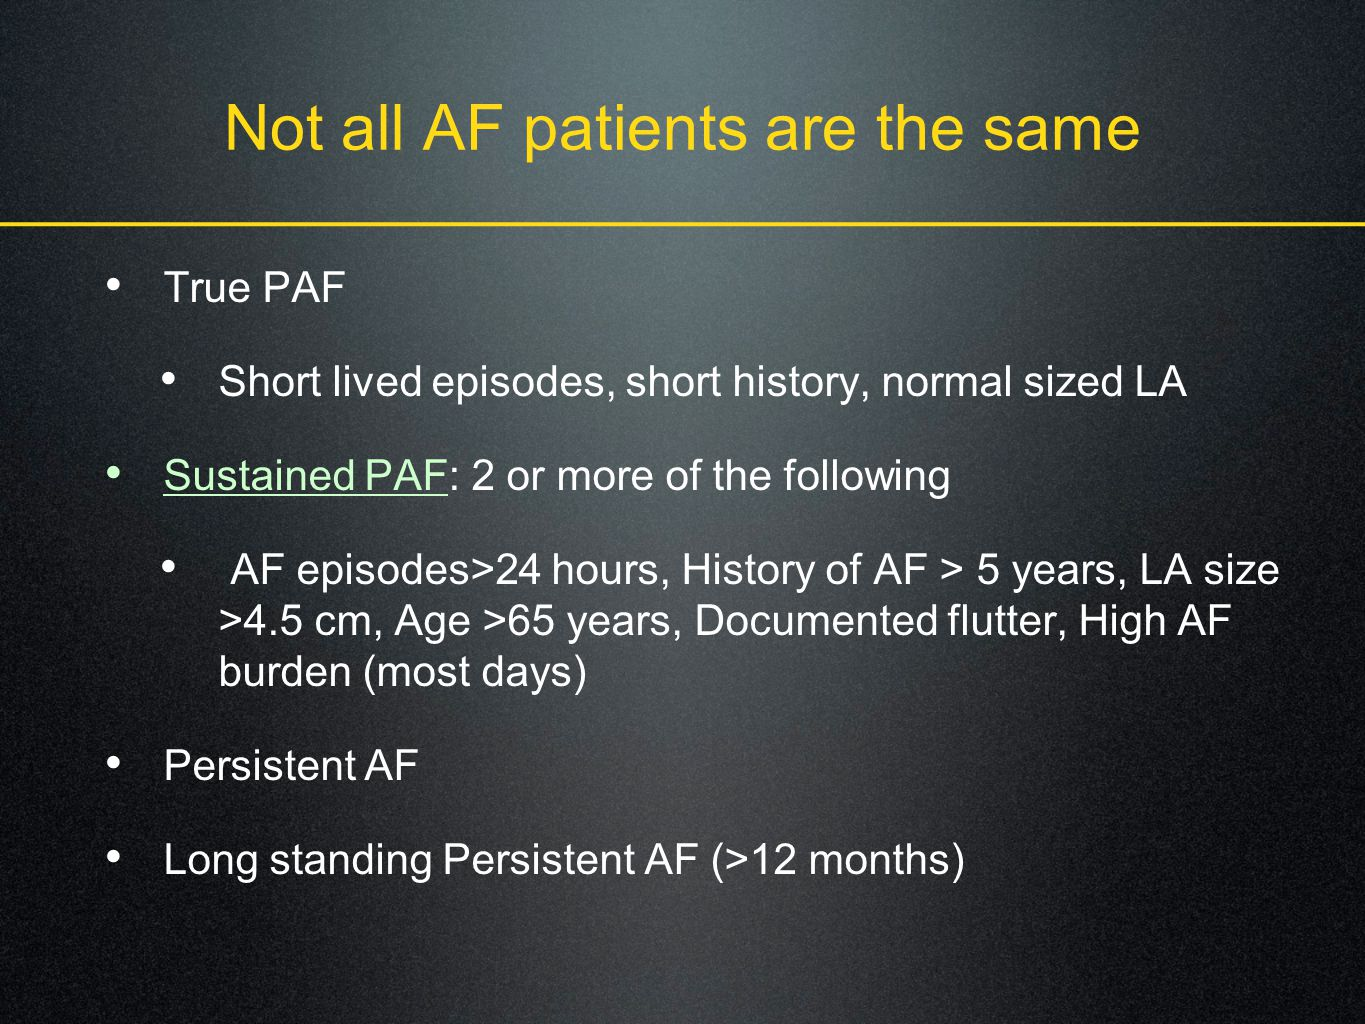 Not all AF patients are the same